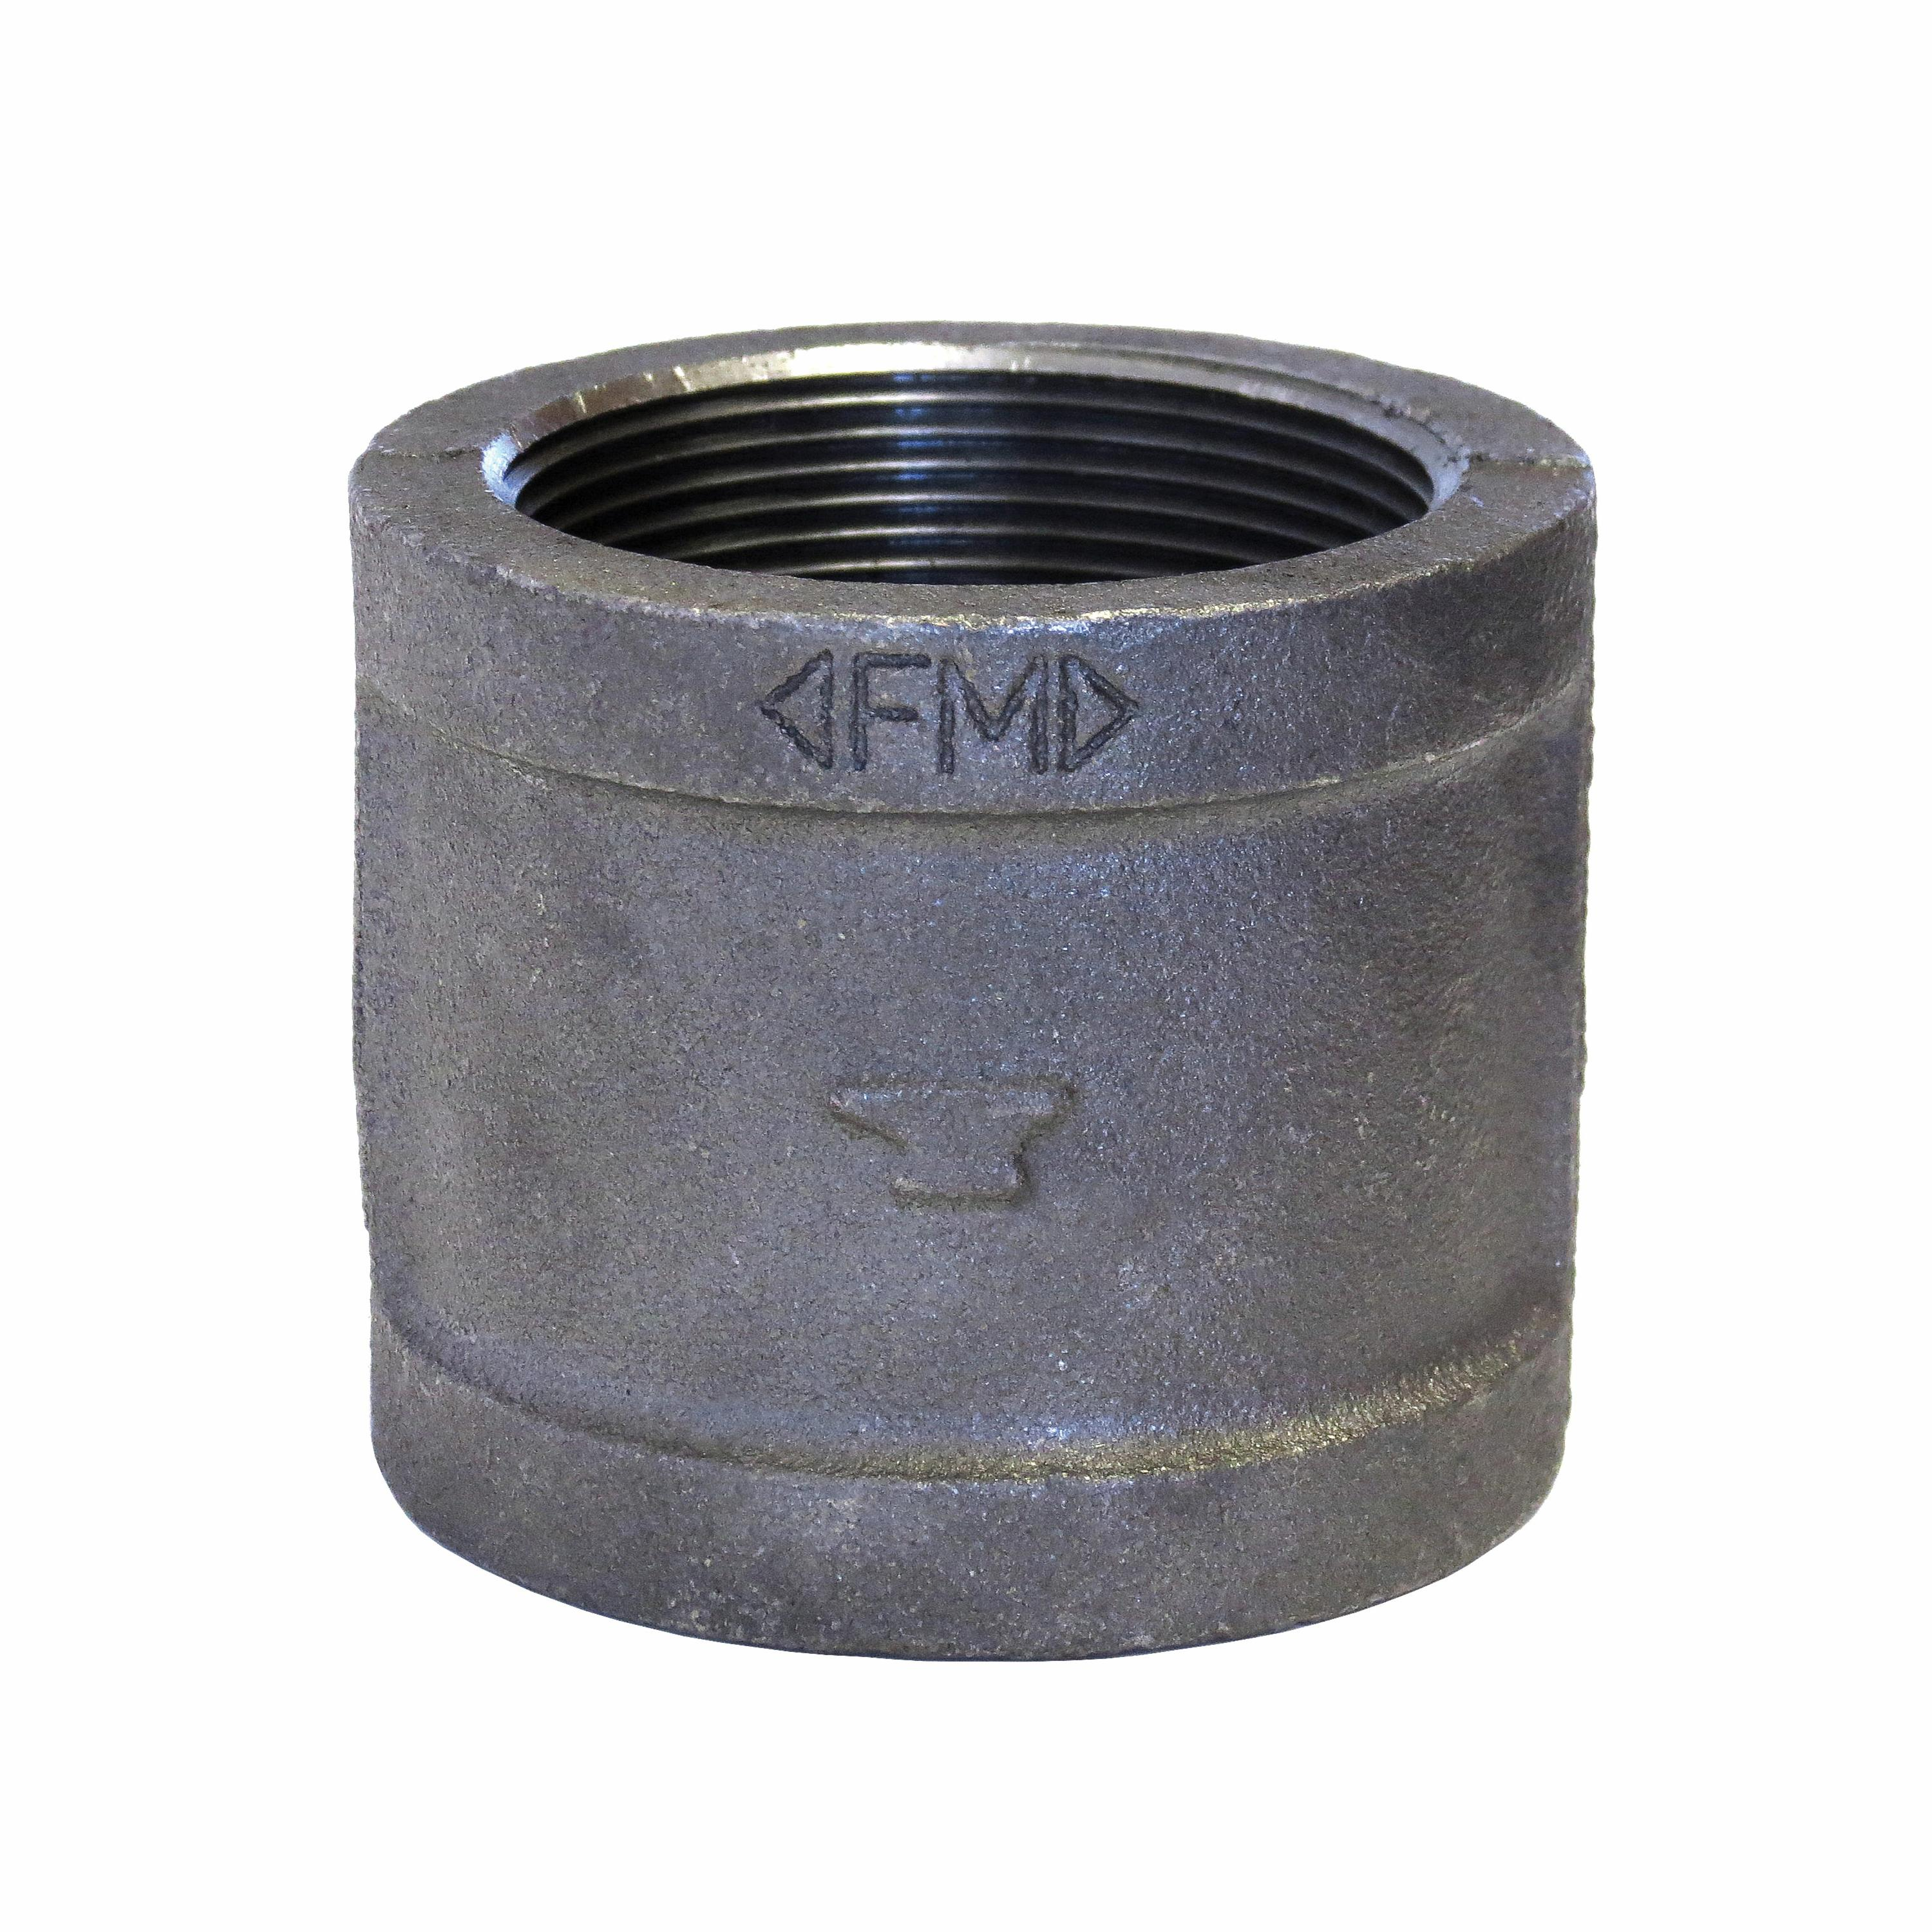 SPF/Anvil™ 0811080209 FIG 3121 Pipe Coupling, 1/2 in, FNPT, 150 lb, Malleable Iron, Galvanized, Import